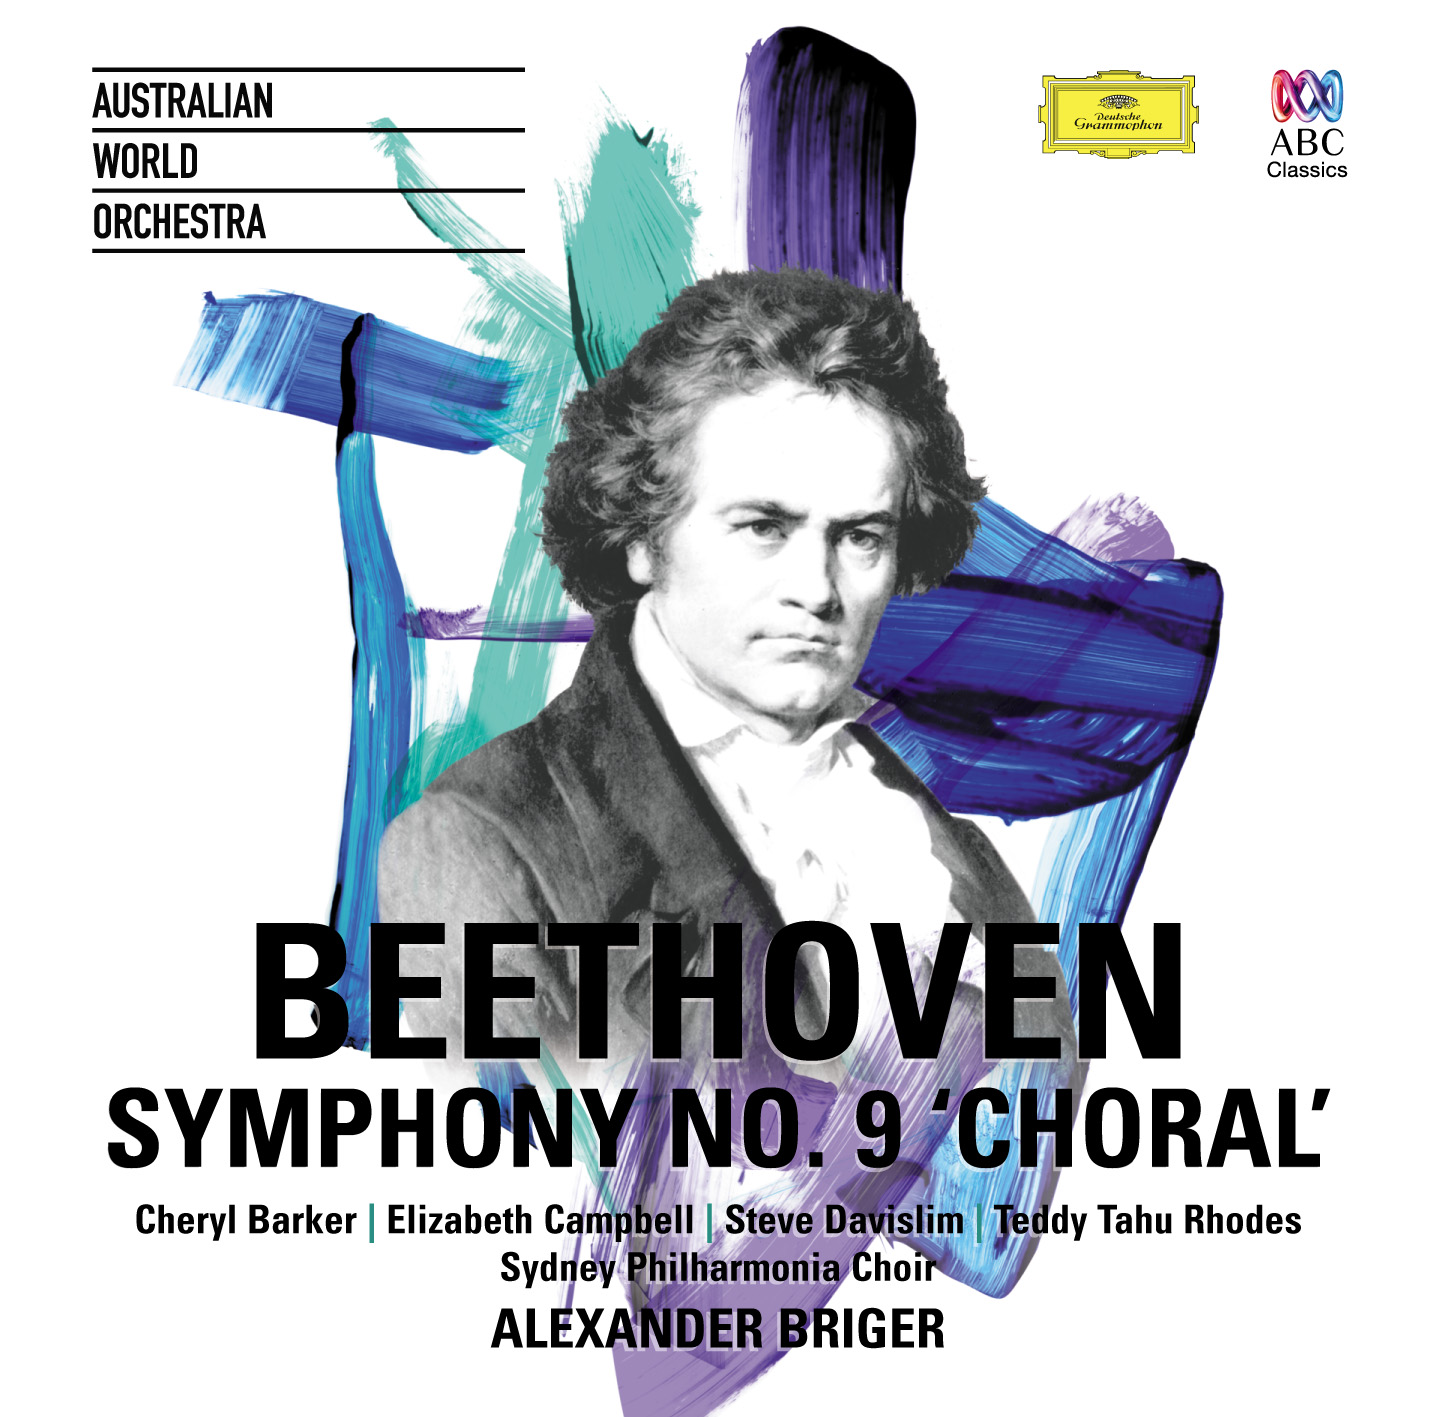 ABC Music | Beethoven's Symphony No  9 'Choral' - Australian